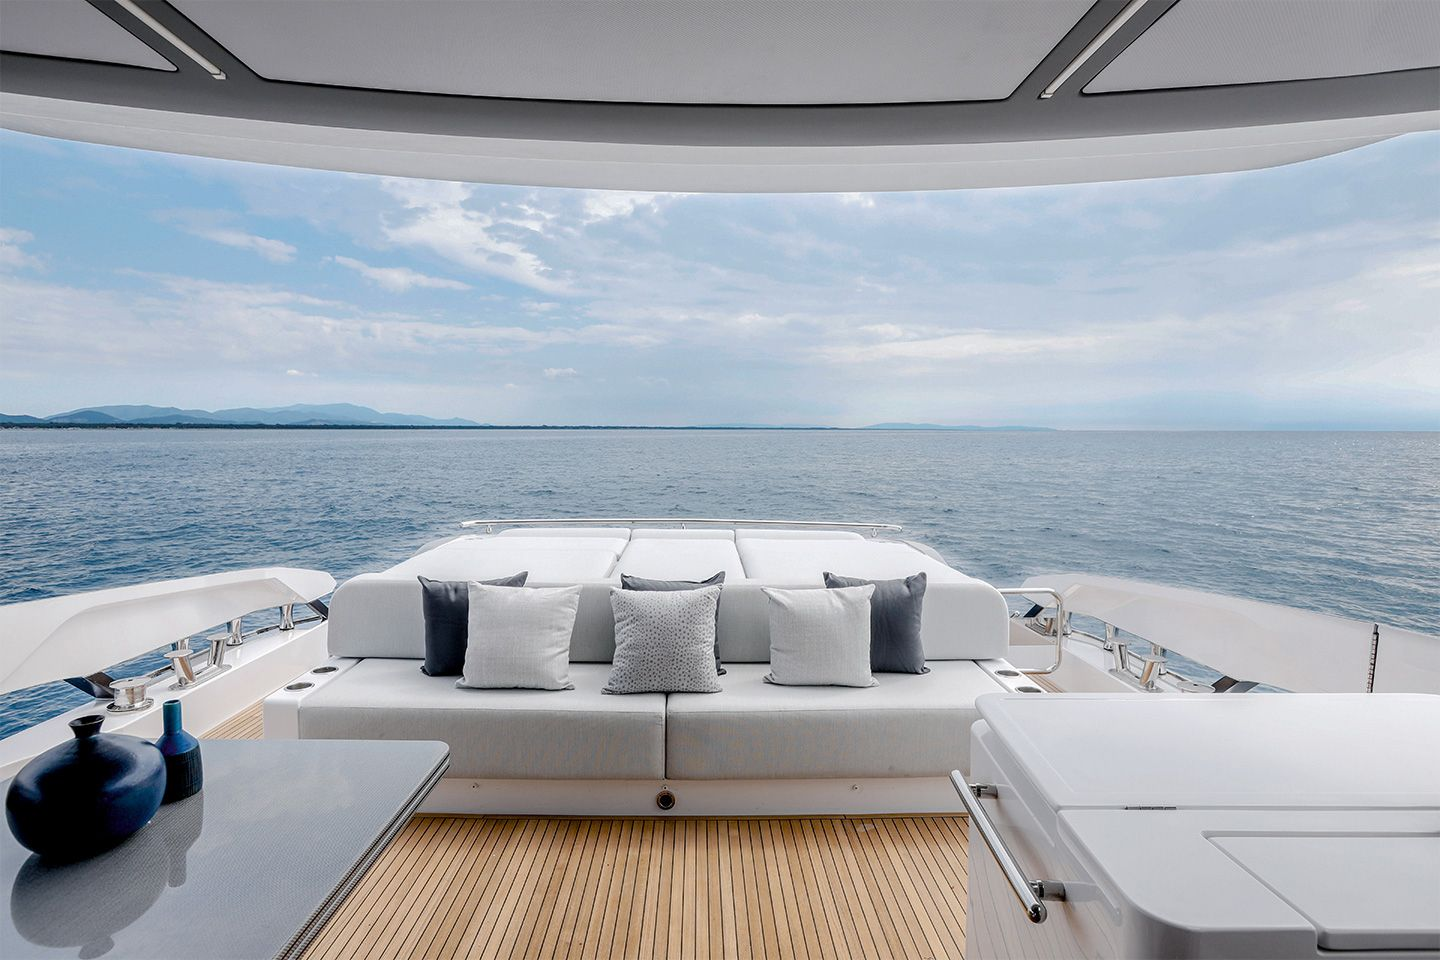 Azimut S8 Azimut Yachts official Luxury yacht sales in